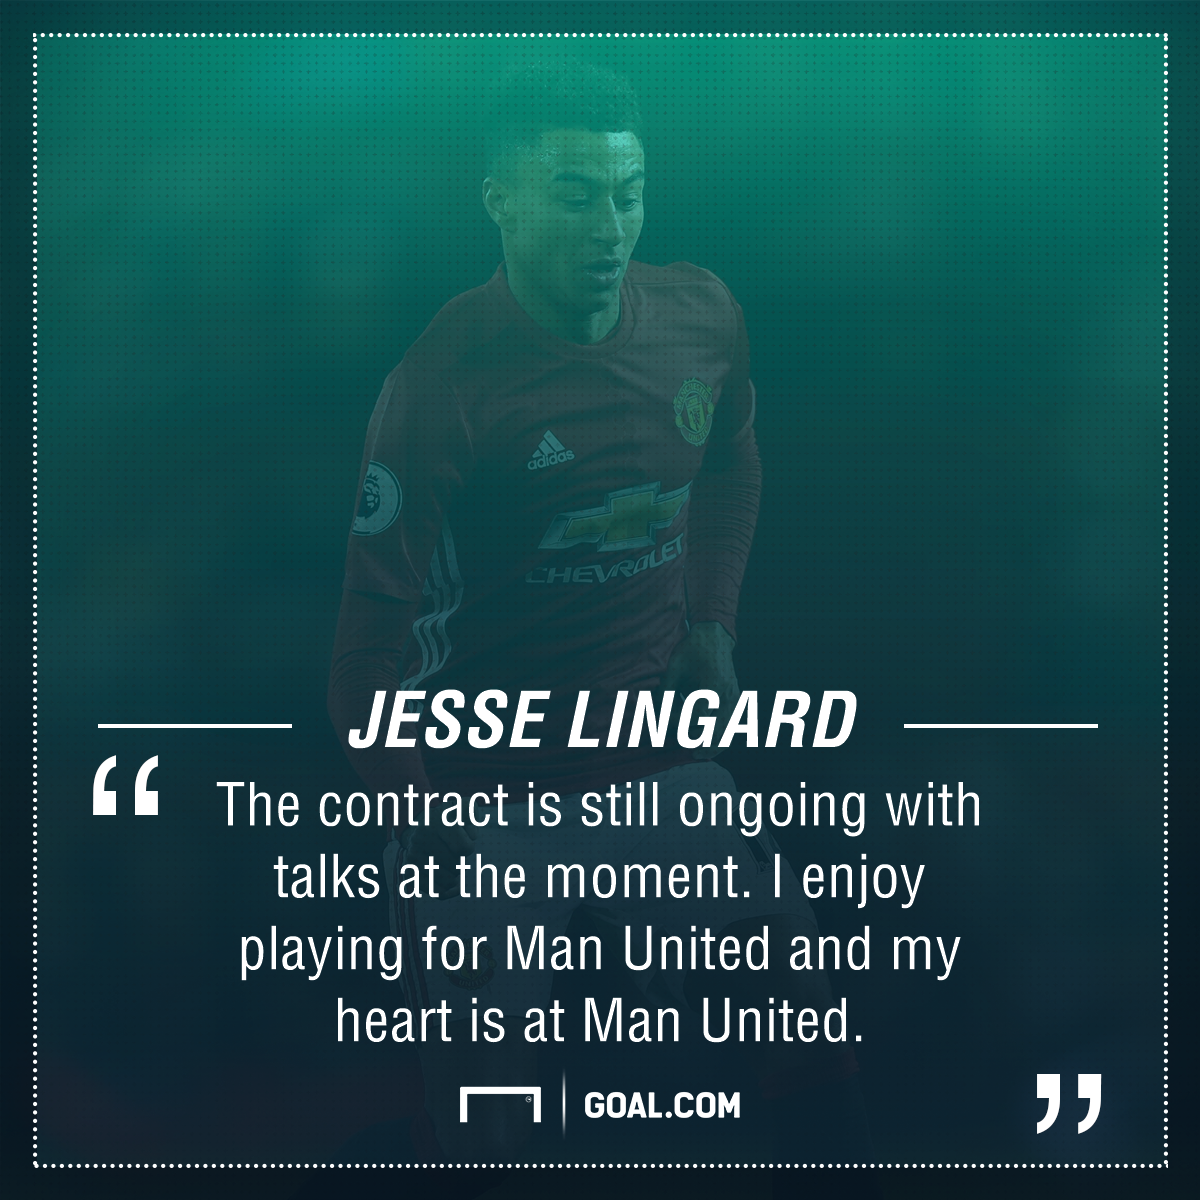 Lingard: My Heart Remains With United